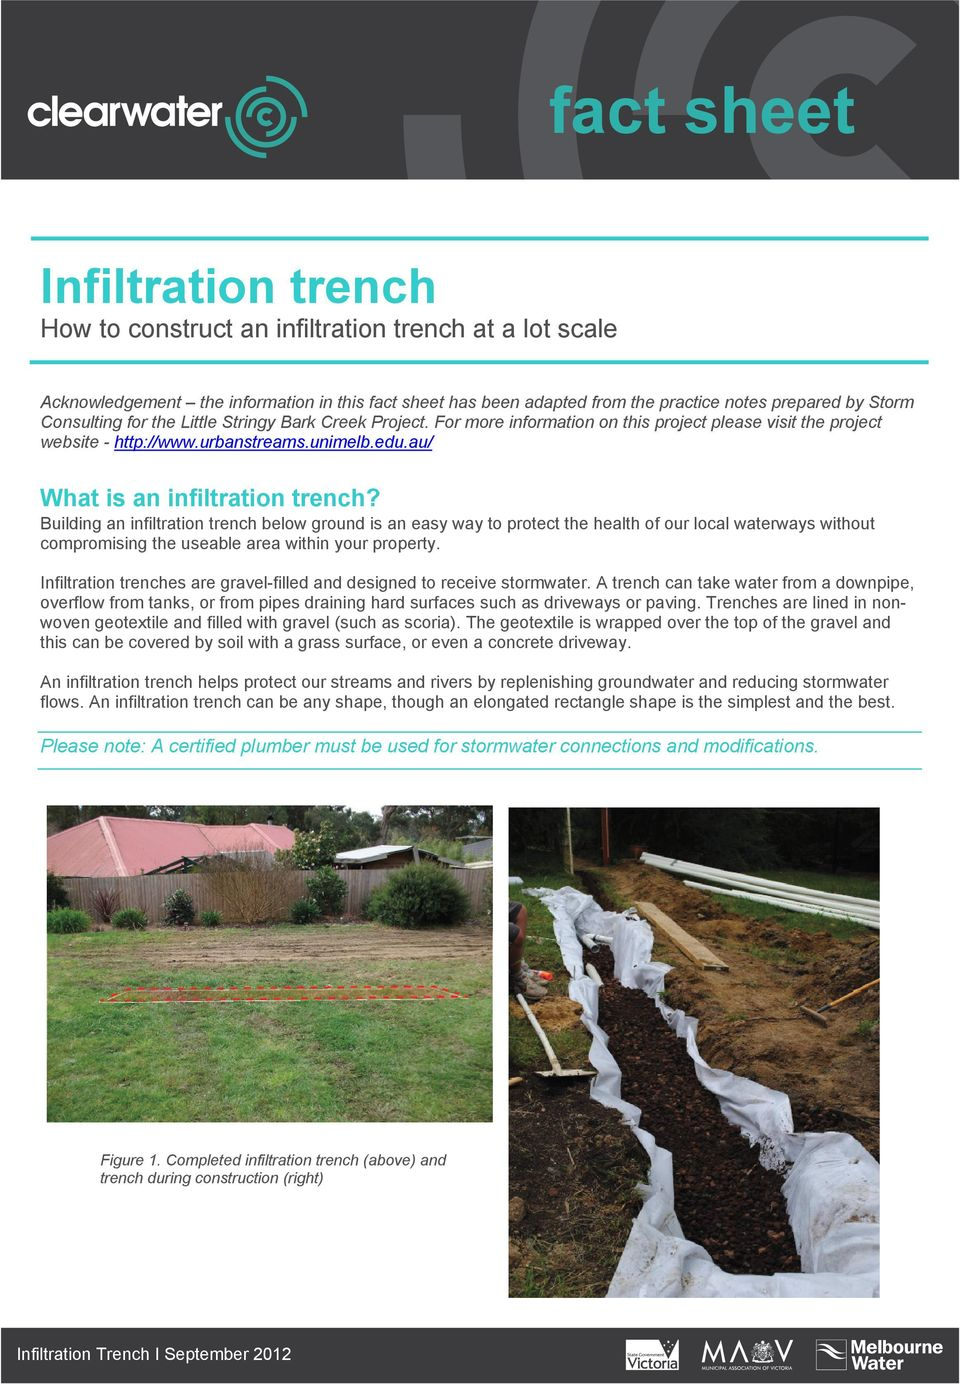 Building an infiltration trench below ground is an easy way to protect the health of our local waterways without compromising the useable area within your property.